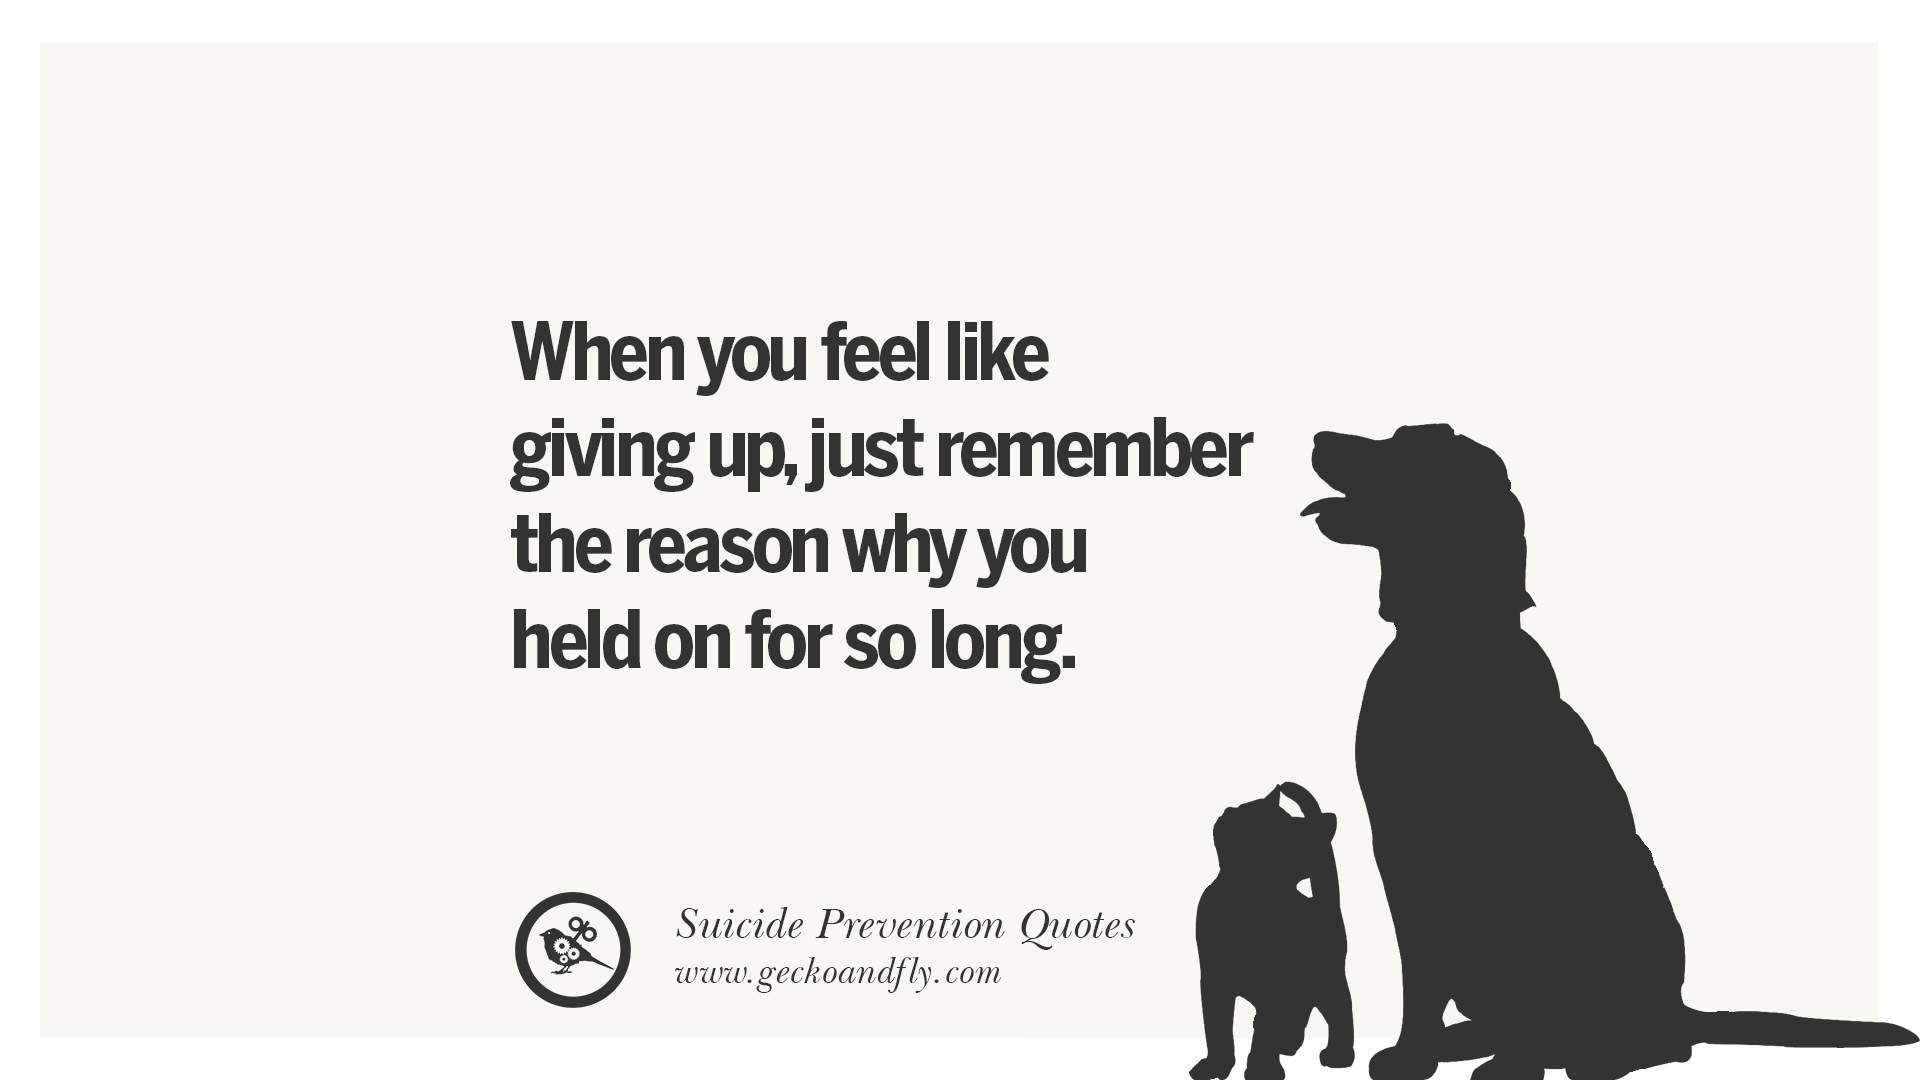 Quotes About Suicidal Thoughts | 30 Helpful Suicidal Prevention Ideation Thoughts And Quotes